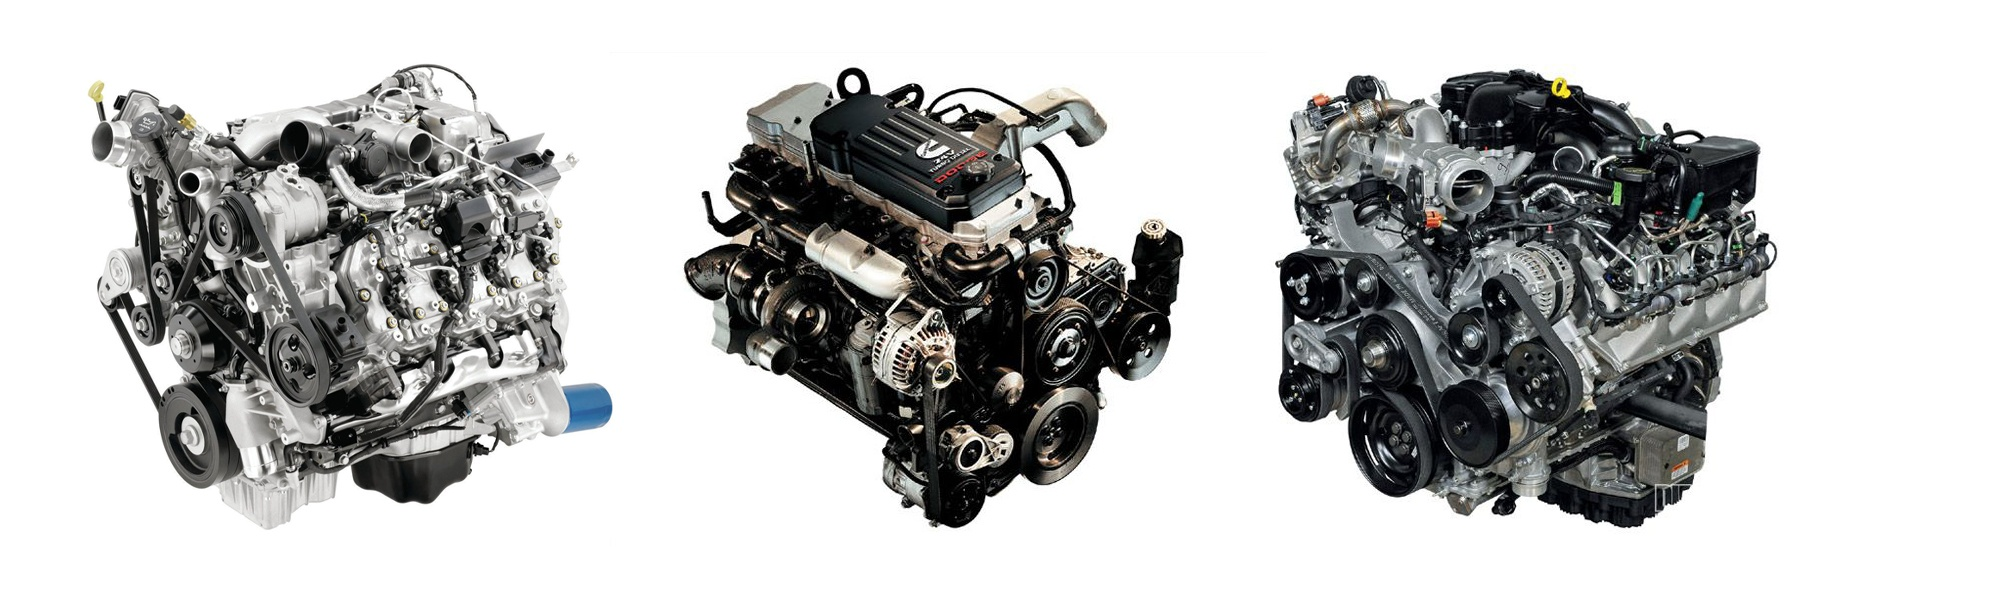 How Diesel Engines Work: Explaining the Function of Compression Ignition Engines